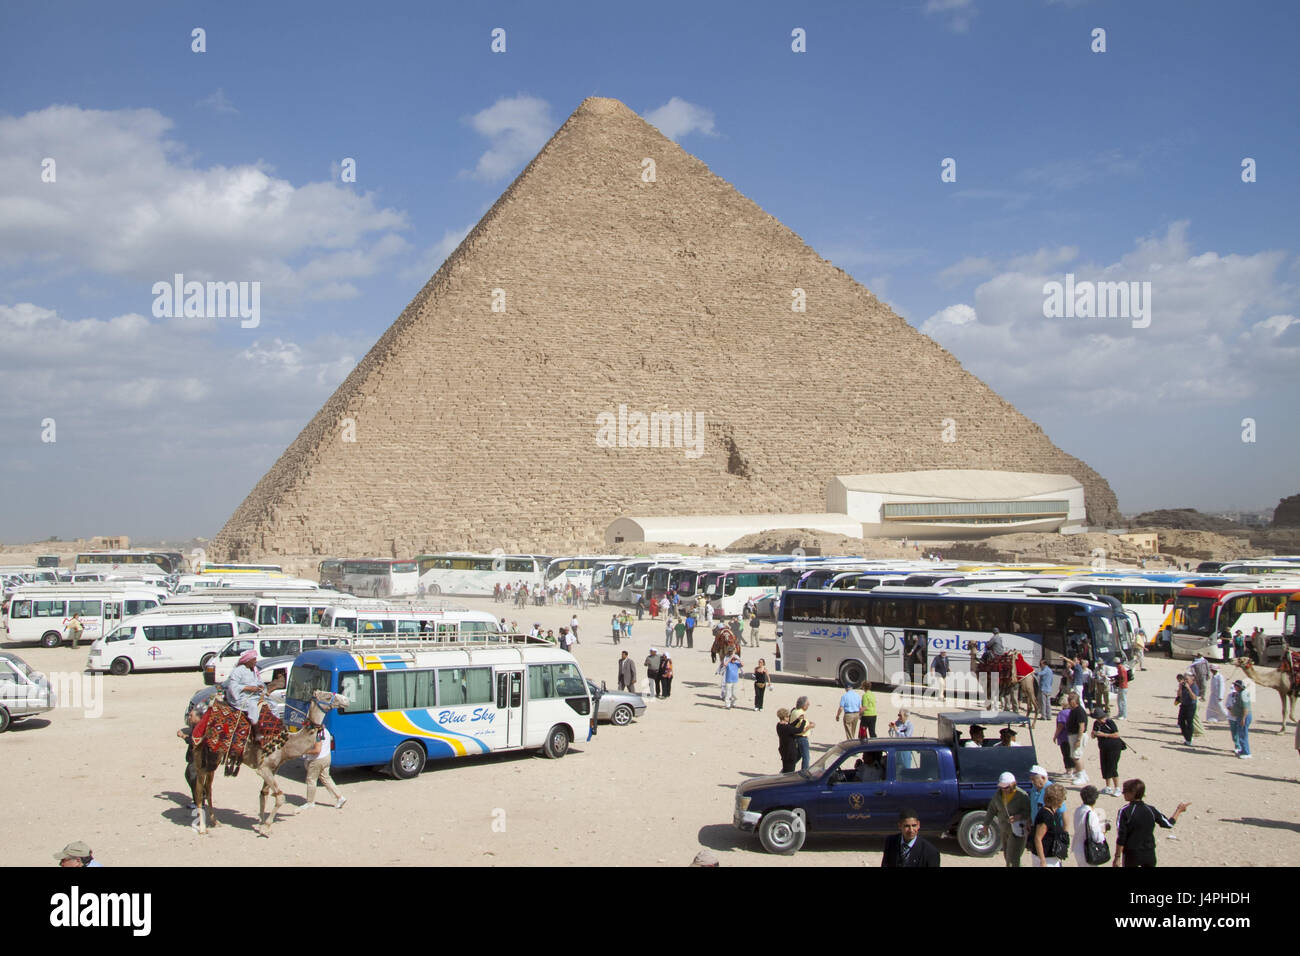 Egypt, pyramids of Gizeh, tour buses, tourists, people, pyramid, holiday buses, park, camel, nomad, ride, people, - Stock Image